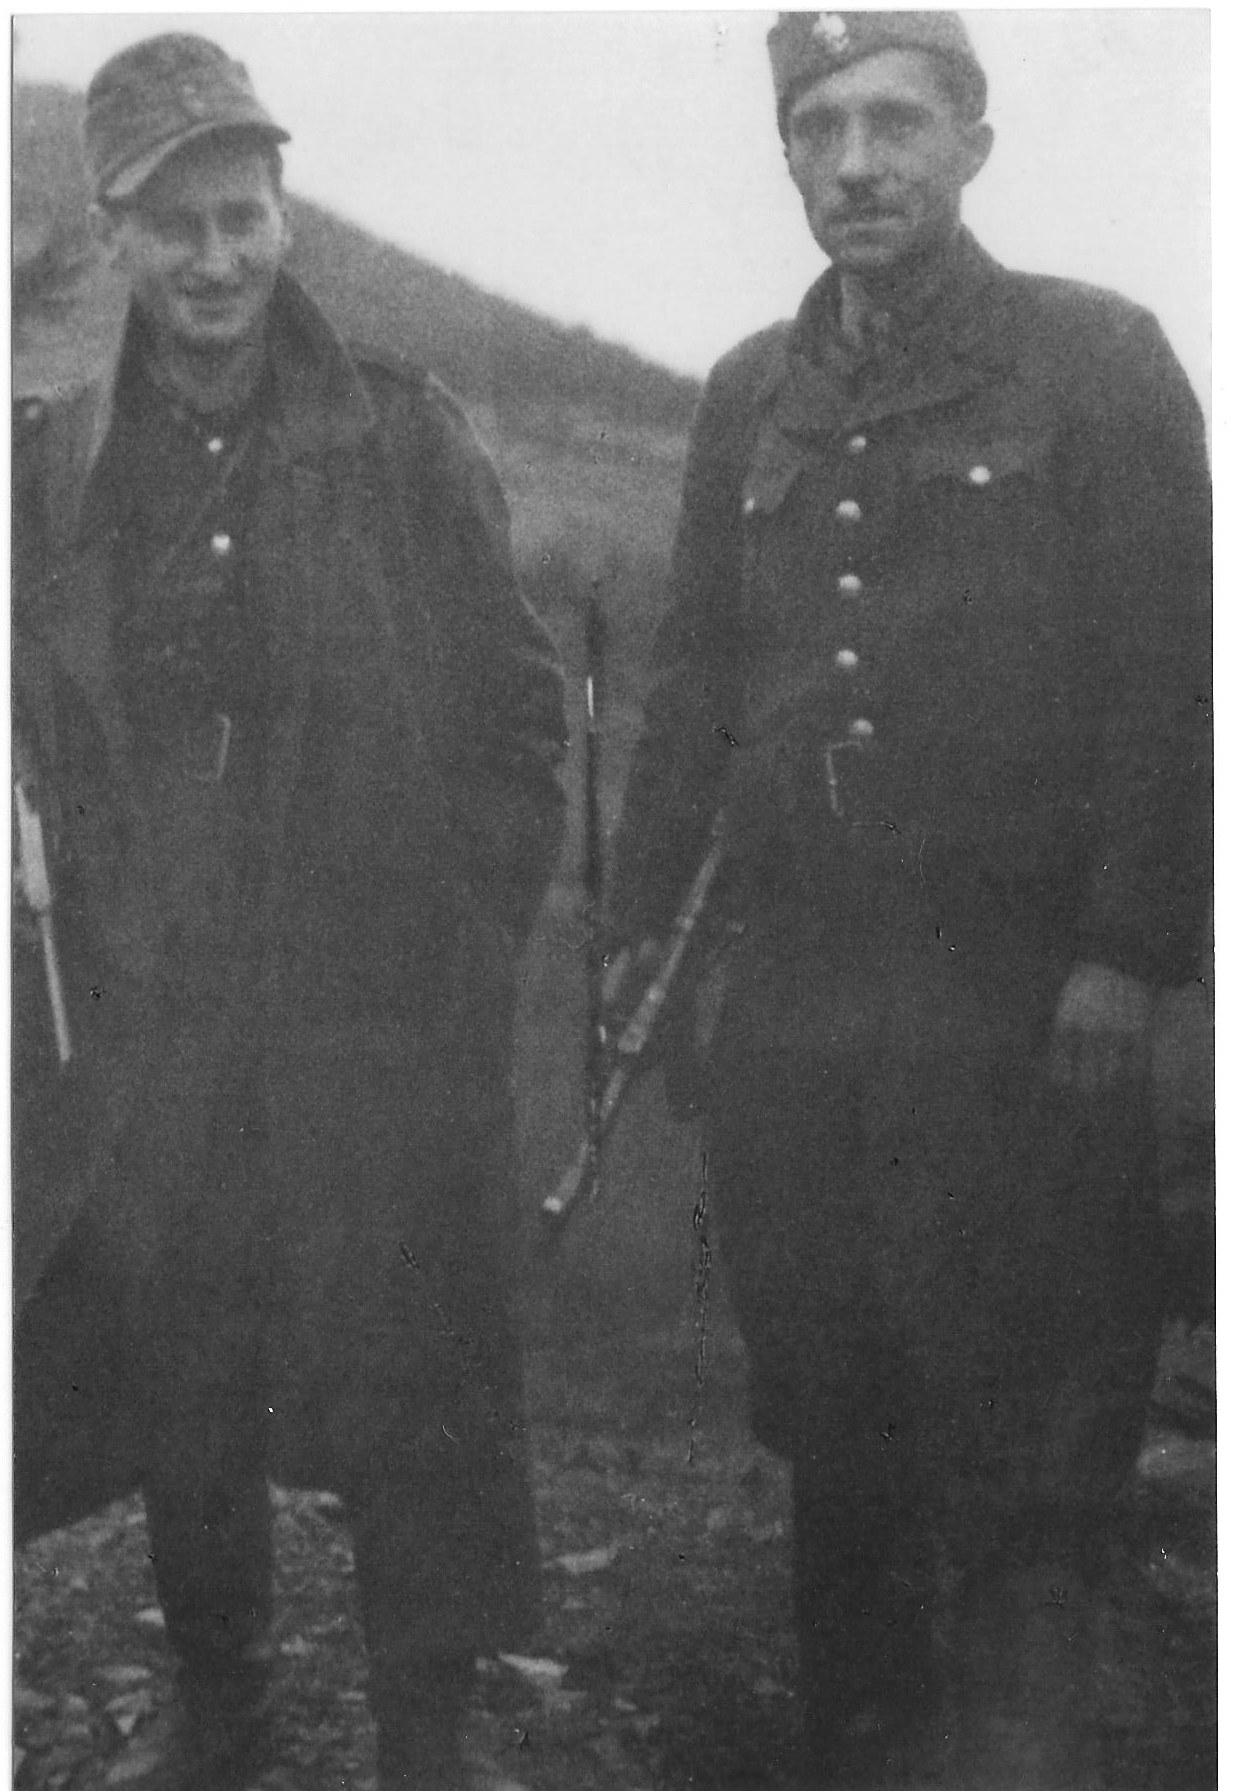 Photo: Maly and Sojka in 1944